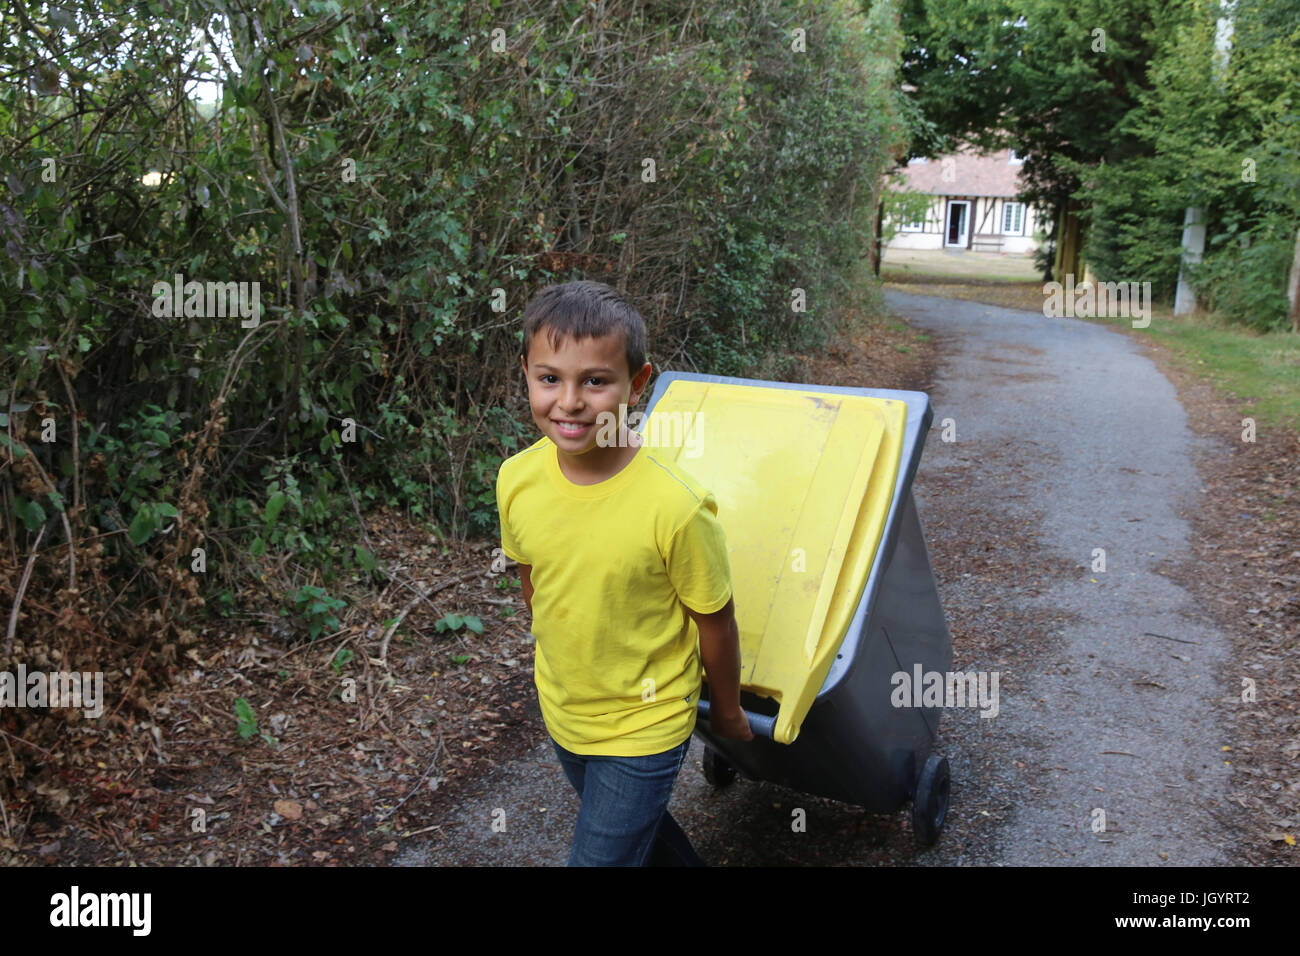 Boy pulling a recycling trash can. France. - Stock Image